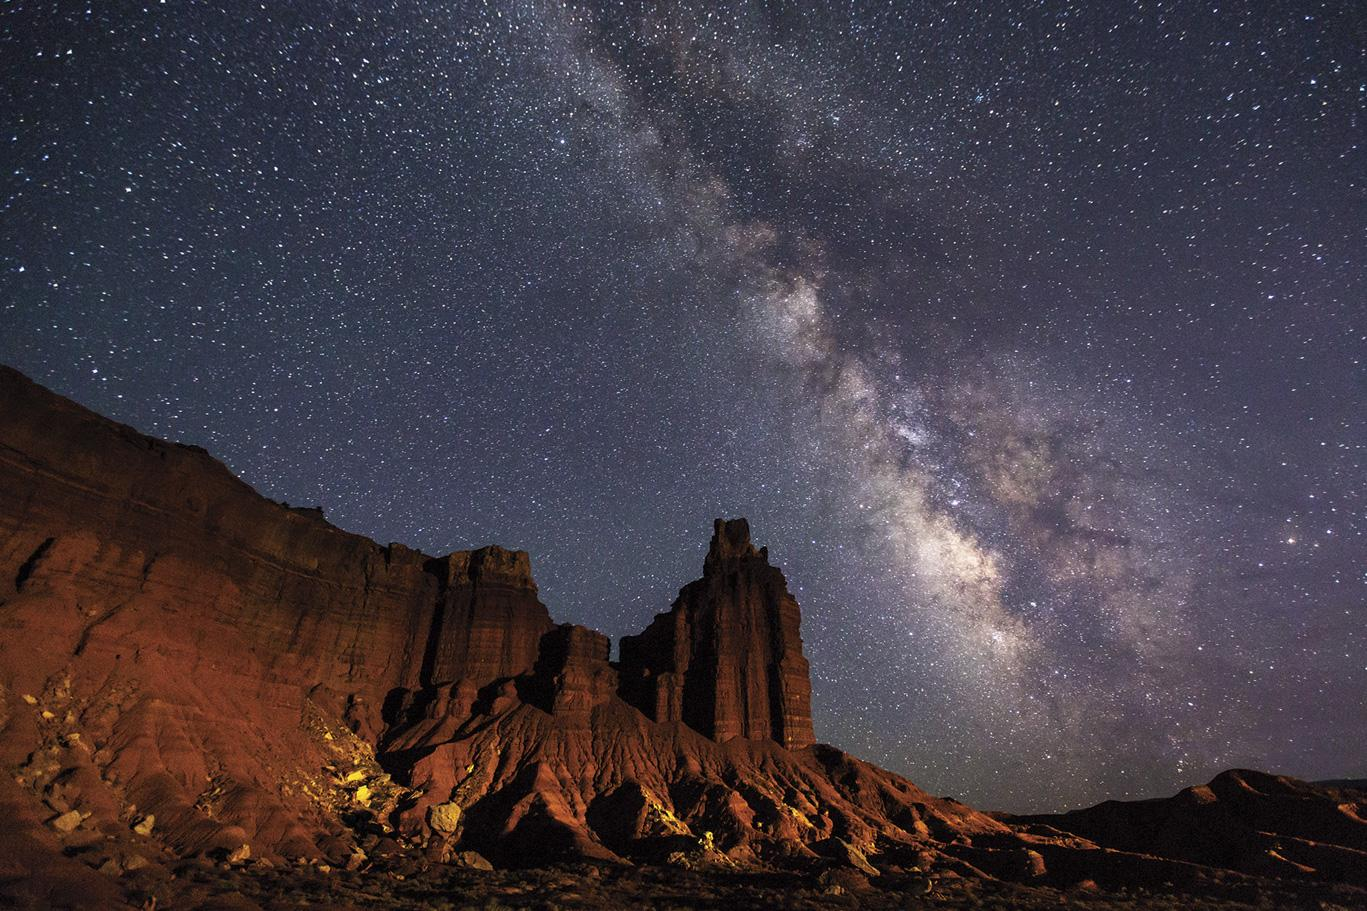 Capitol Reef National Park, Utah, 2015, an International Dark Sky Park